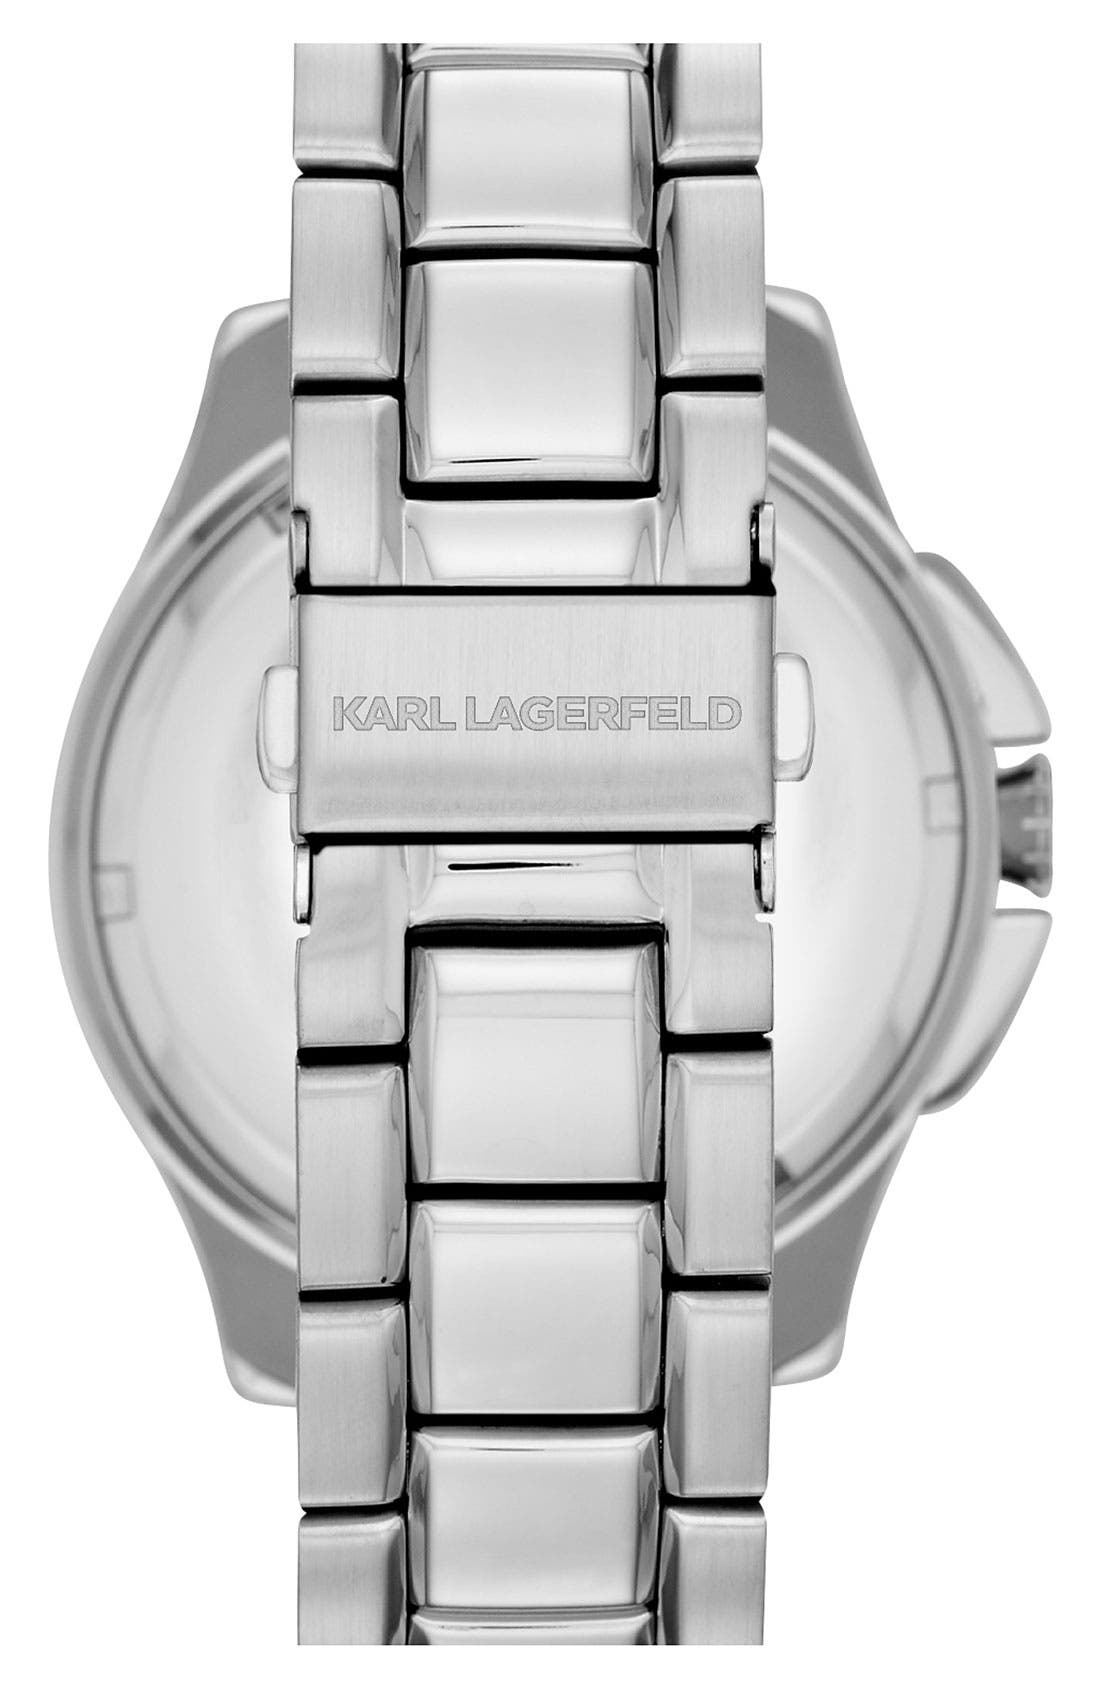 Alternate Image 2  - KARL LAGERFELD '7' Faceted Bezel Bracelet Watch, 44mm x 53mm